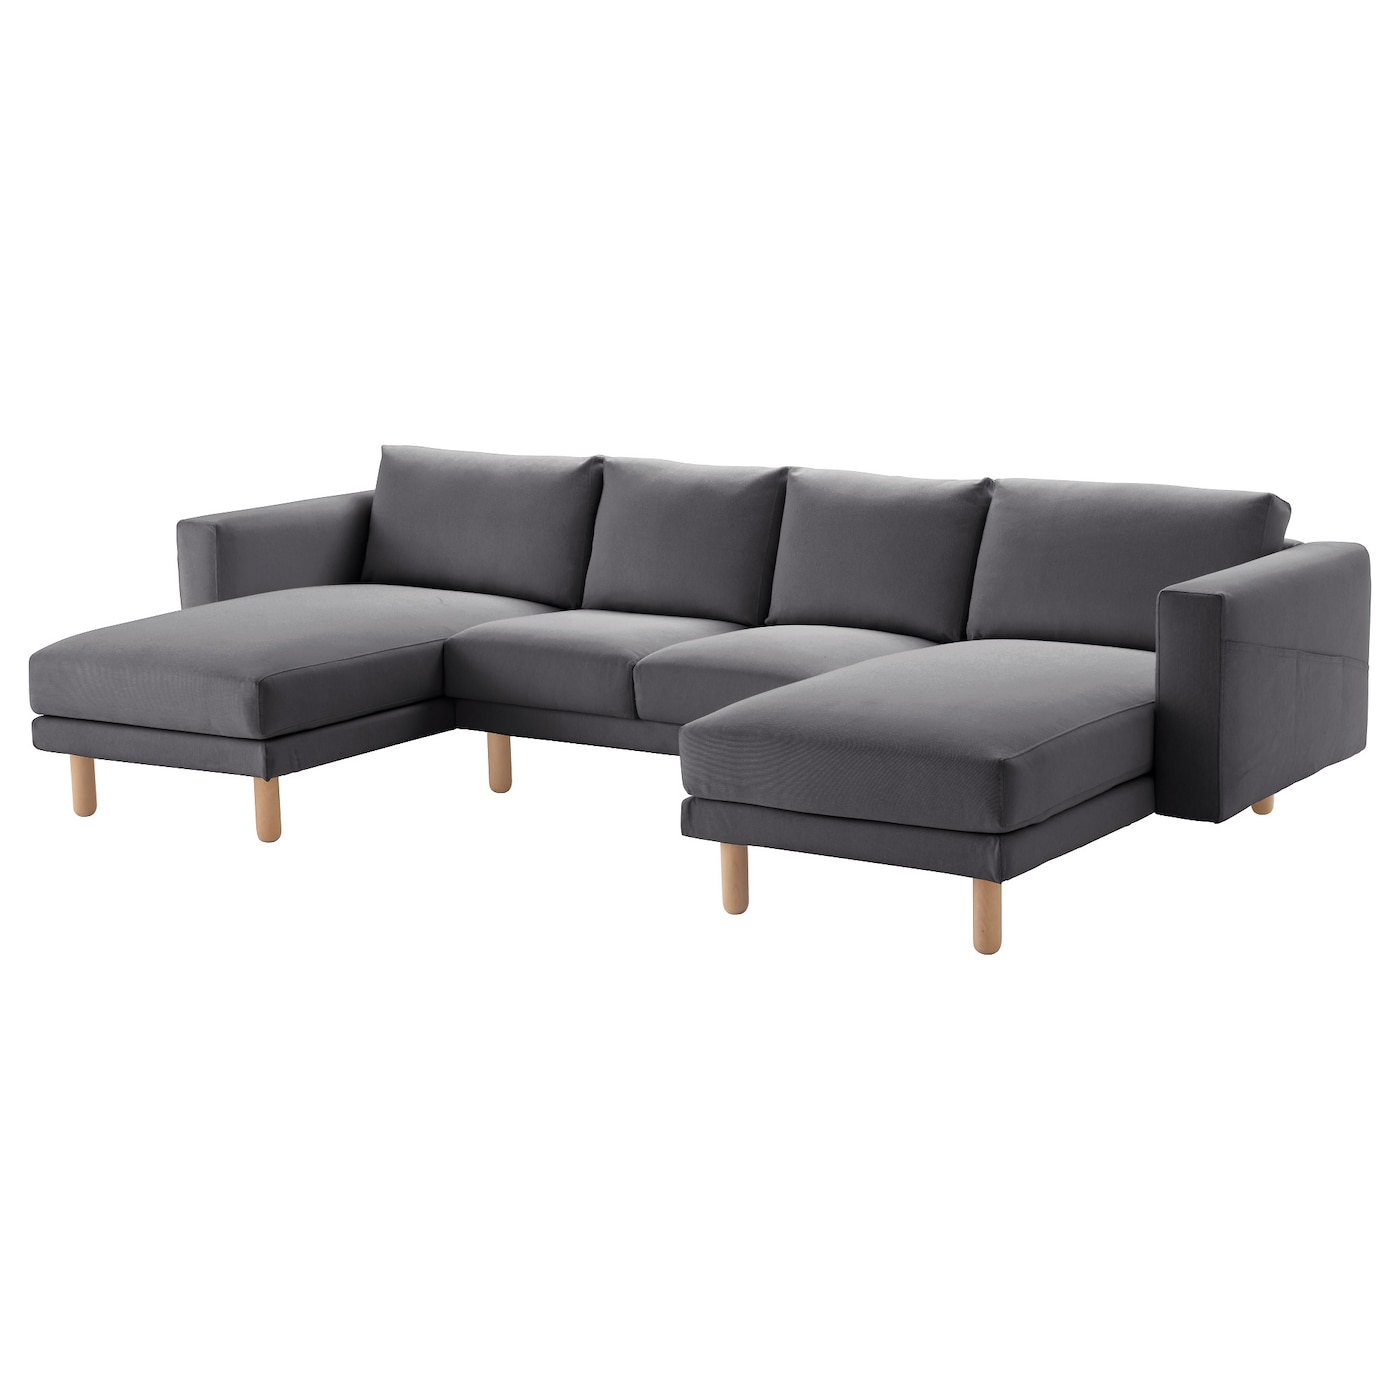 norsborg 2 seat sofa with 2 chaise longues finnsta dark. Black Bedroom Furniture Sets. Home Design Ideas